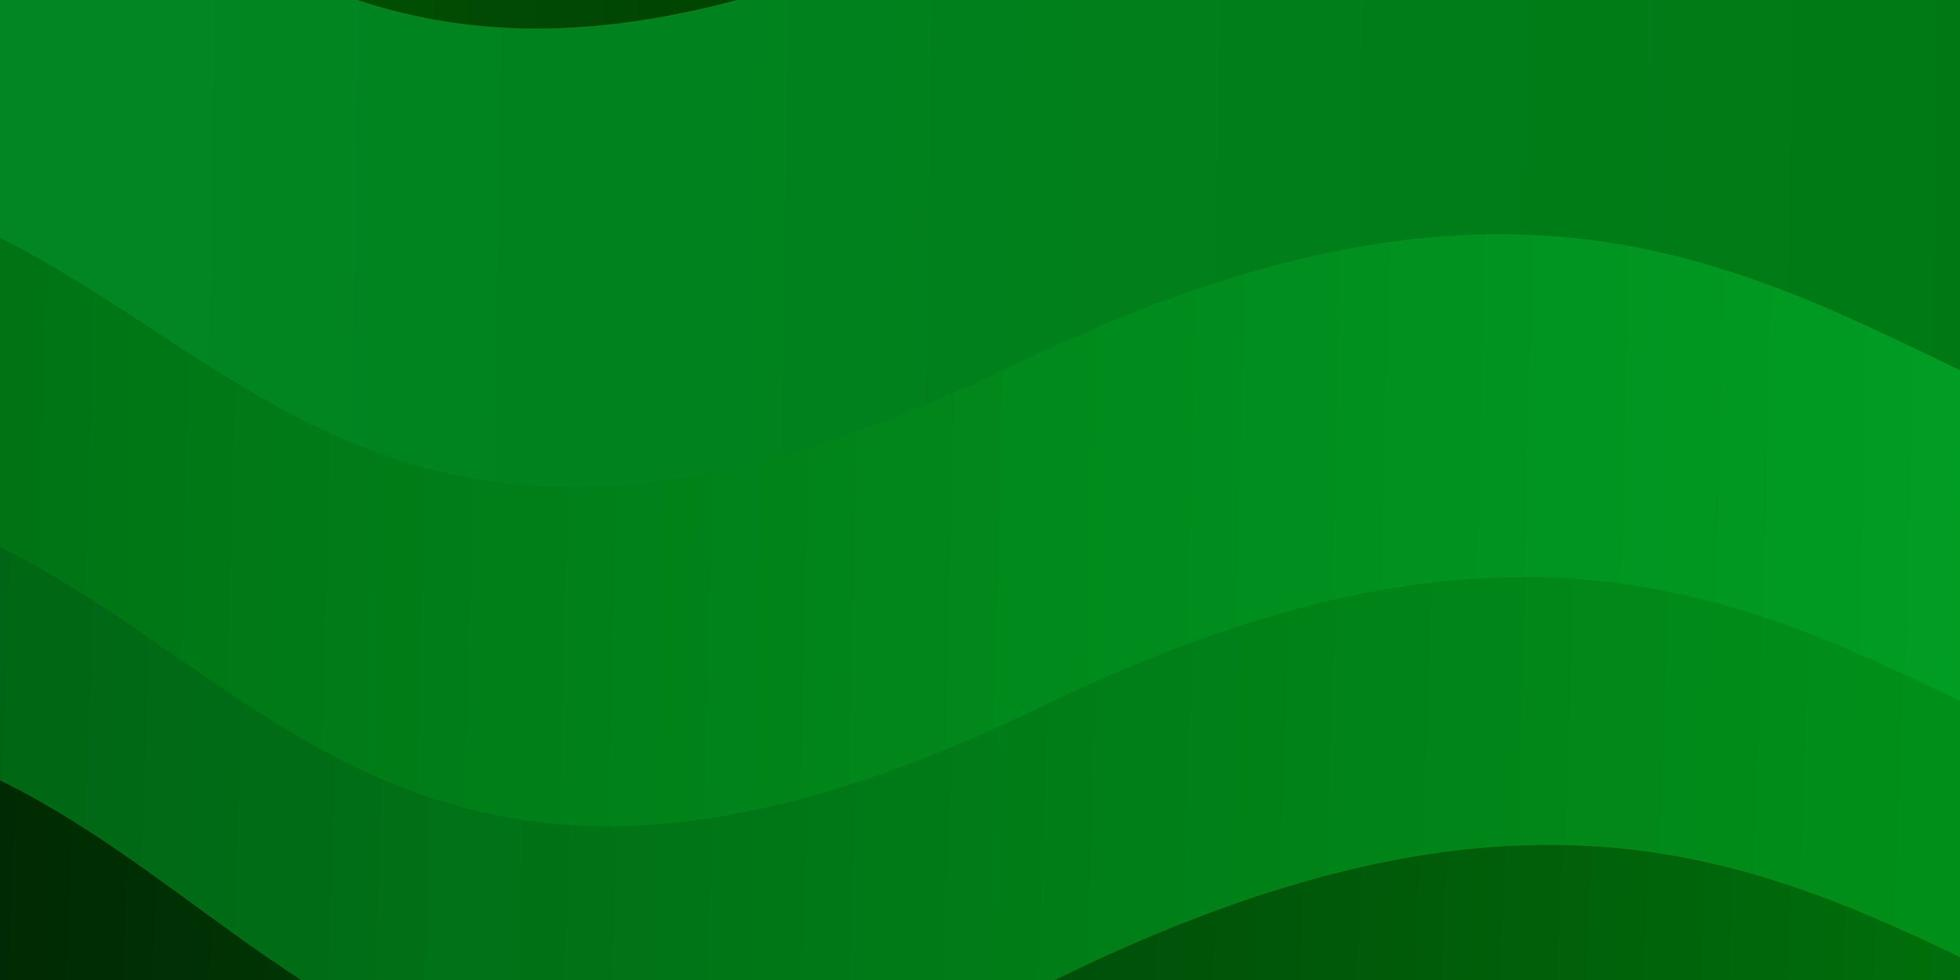 Light Green background with curved lines. vector